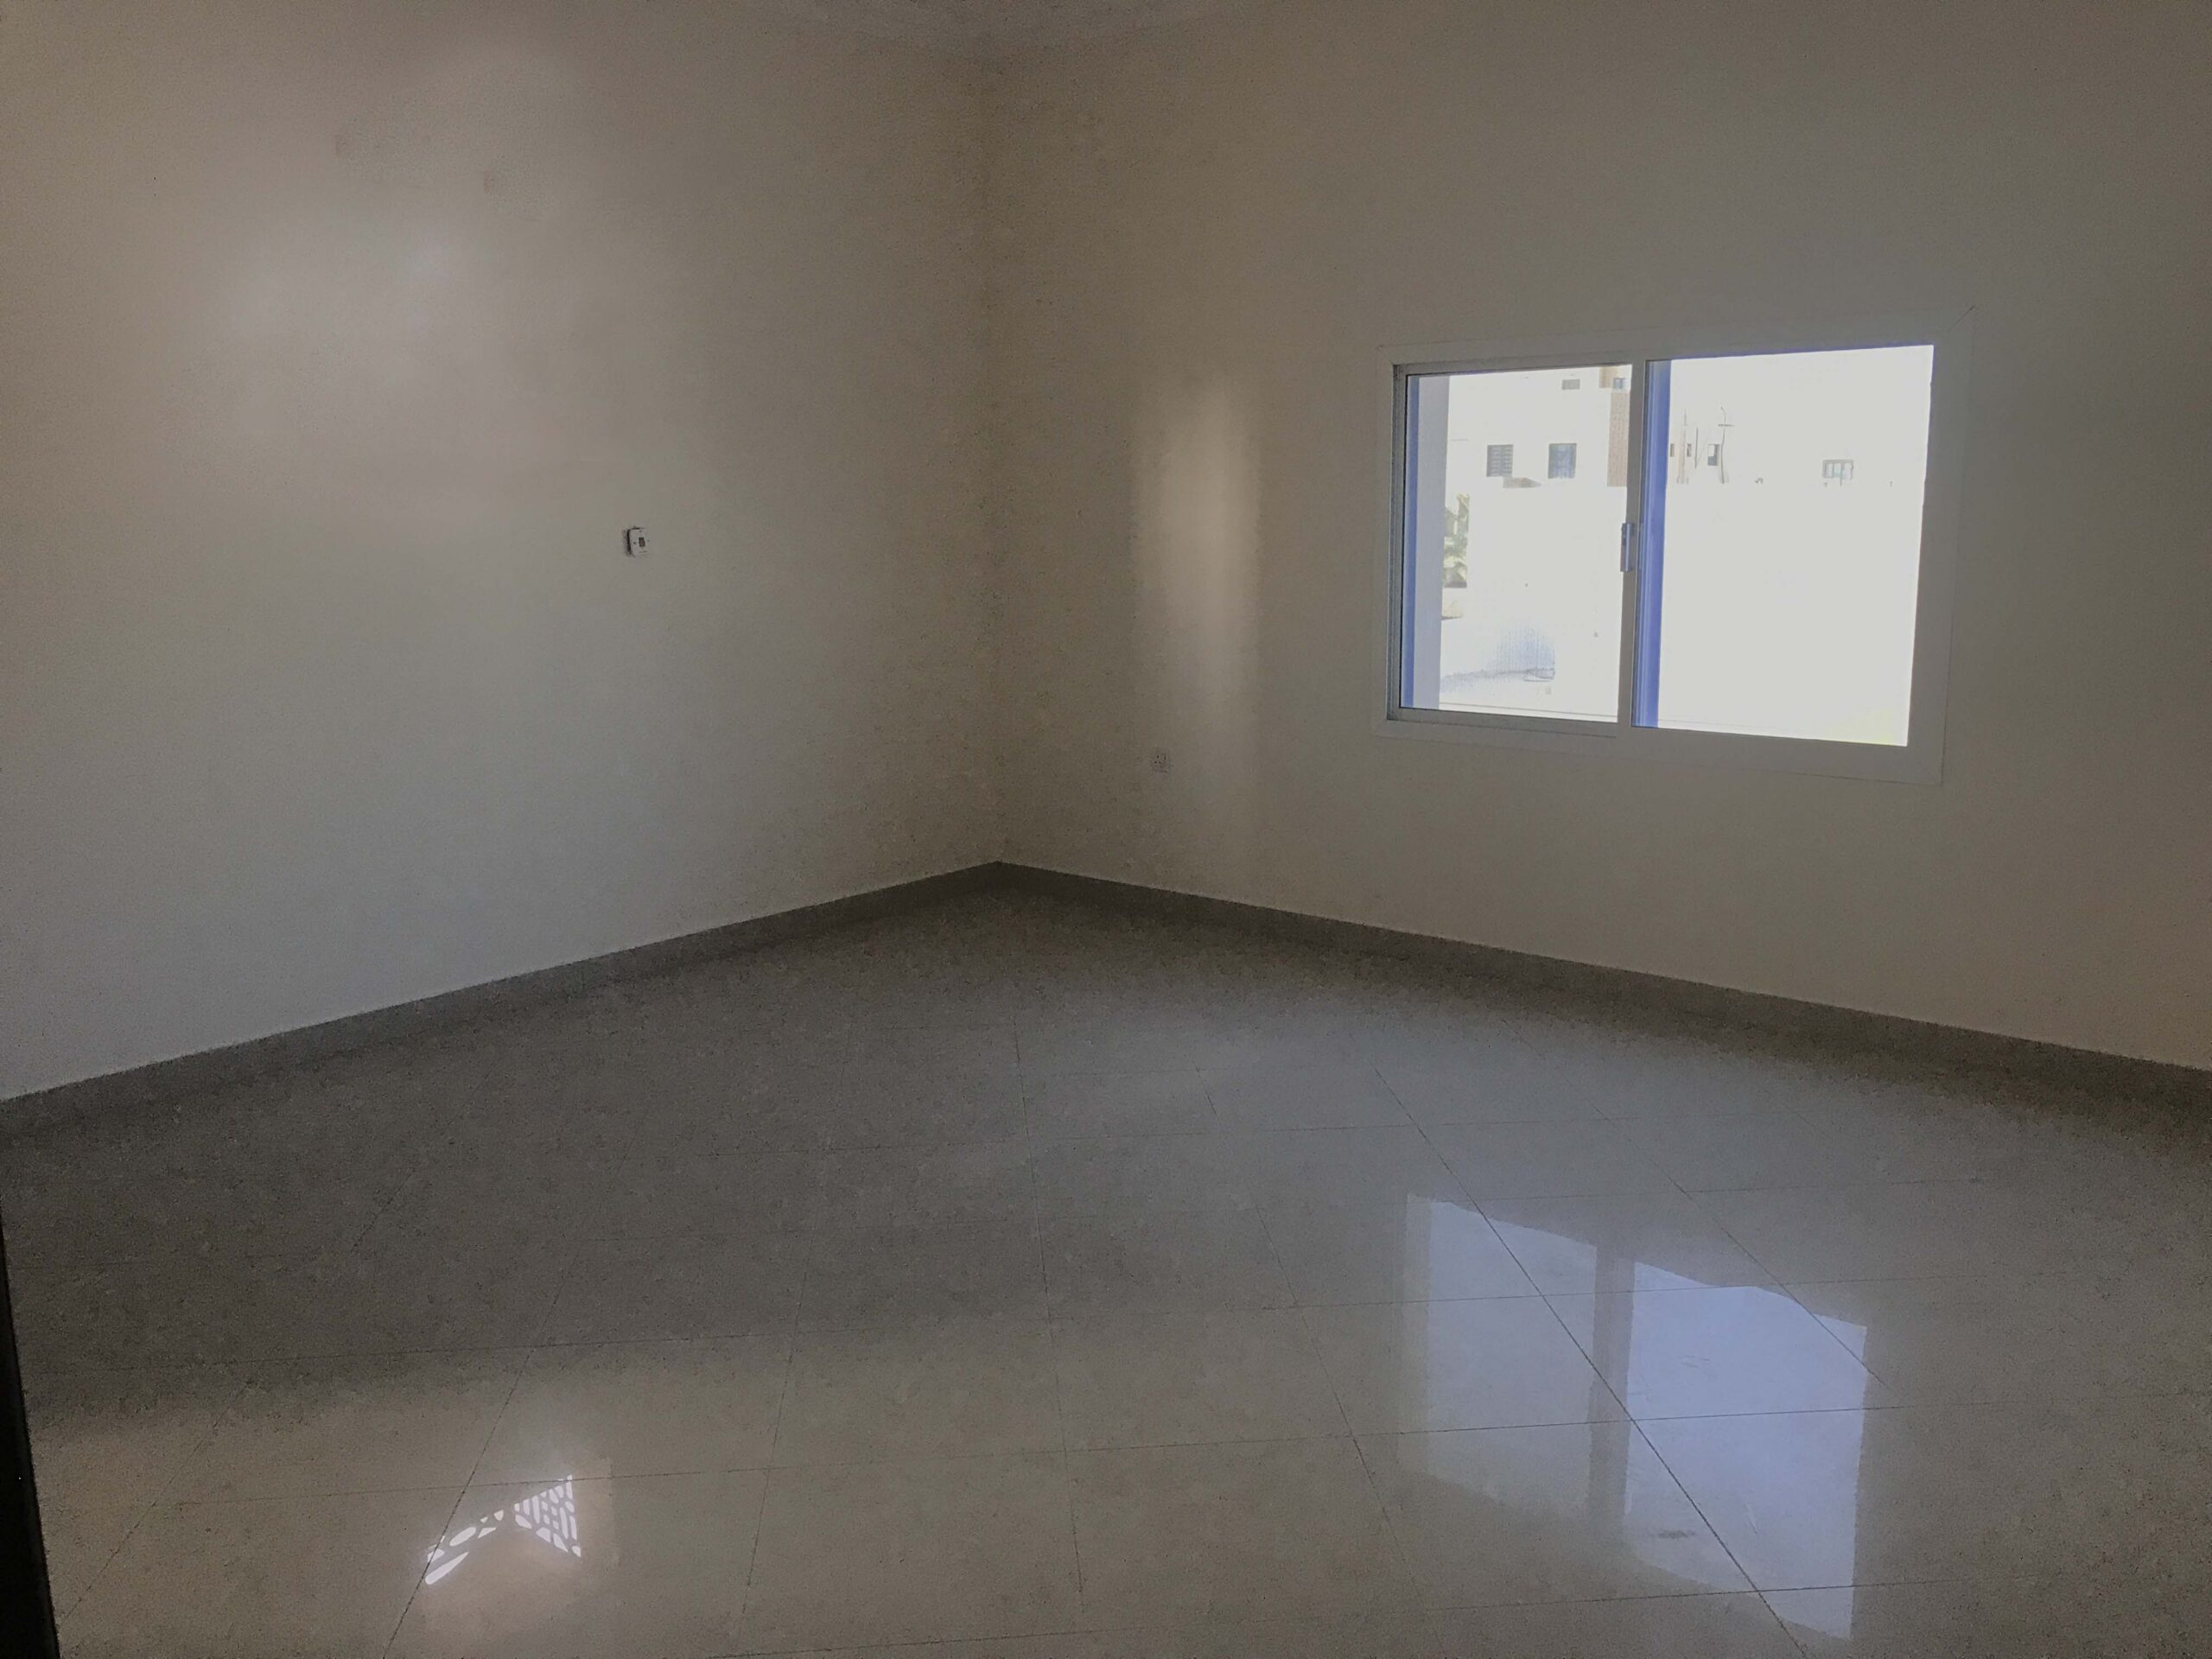 Flat for rent in Isa Town close to Gulf University offered for BD 250 /- per month